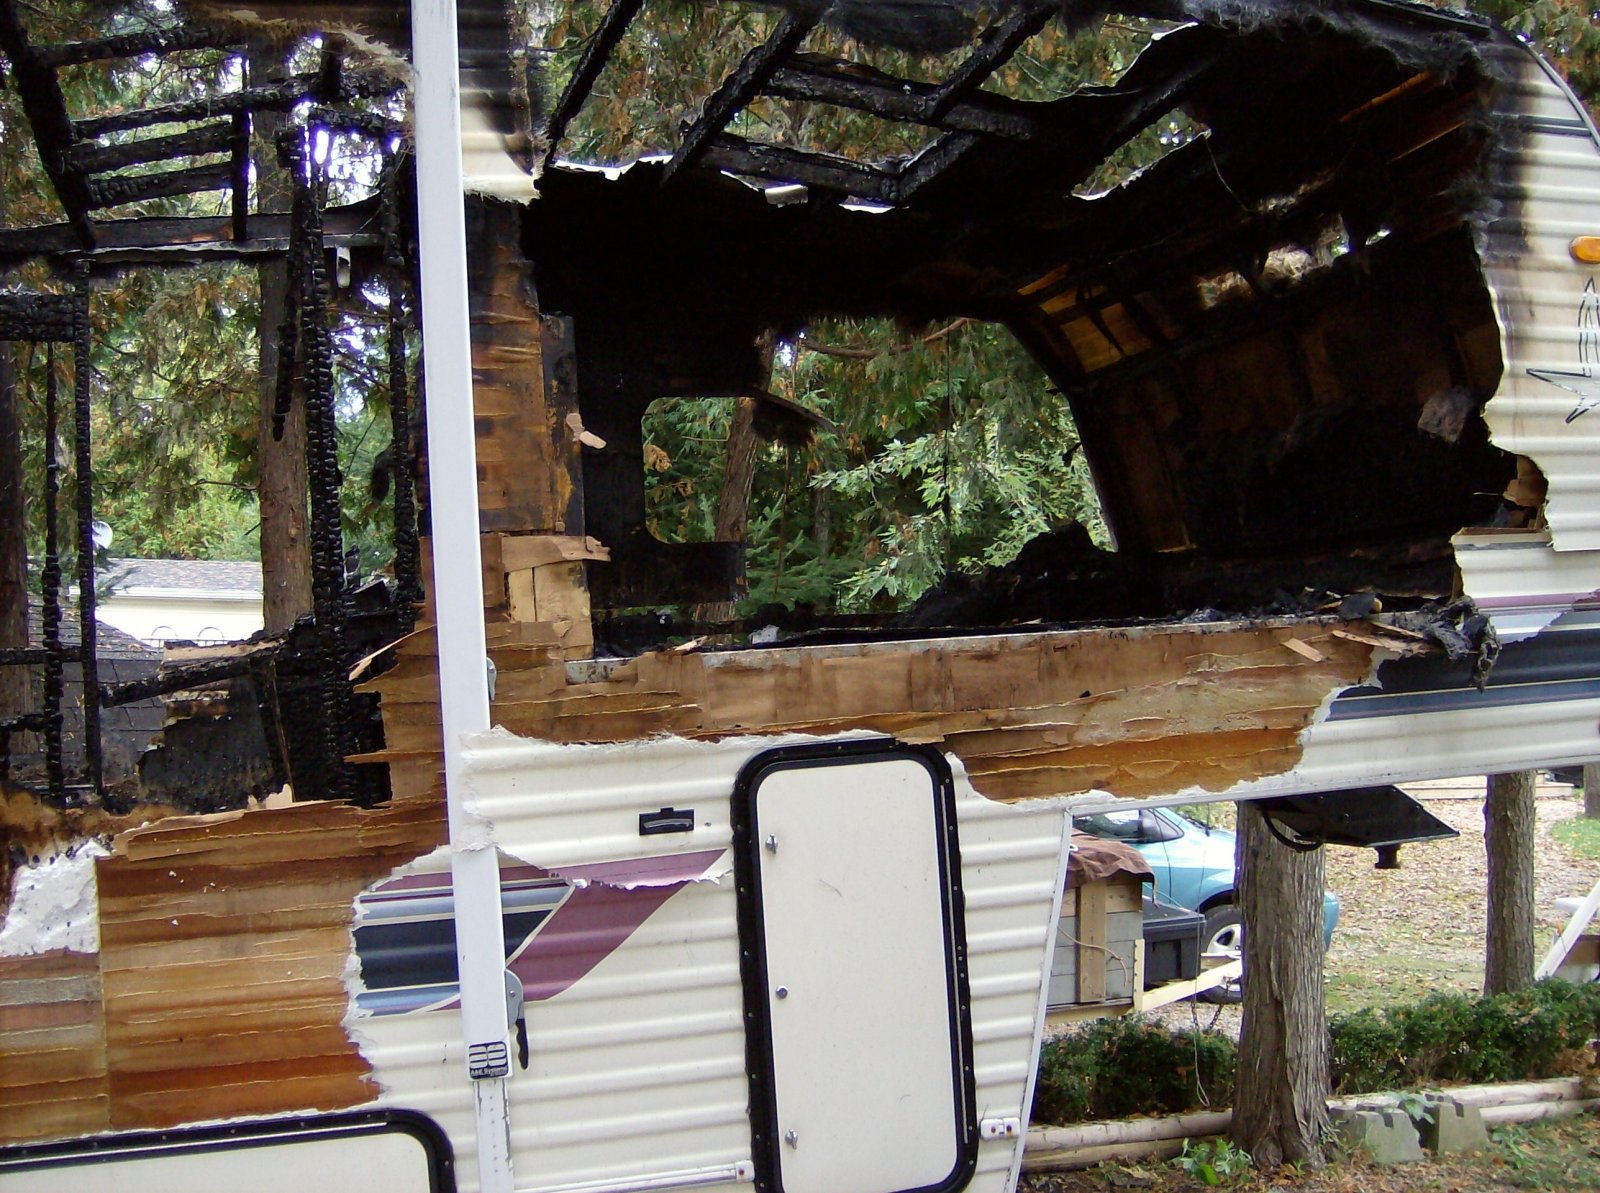 Click image for larger version  Name:Fire Damaged Trailer 003.jpg Views:109 Size:420.7 KB ID:112187